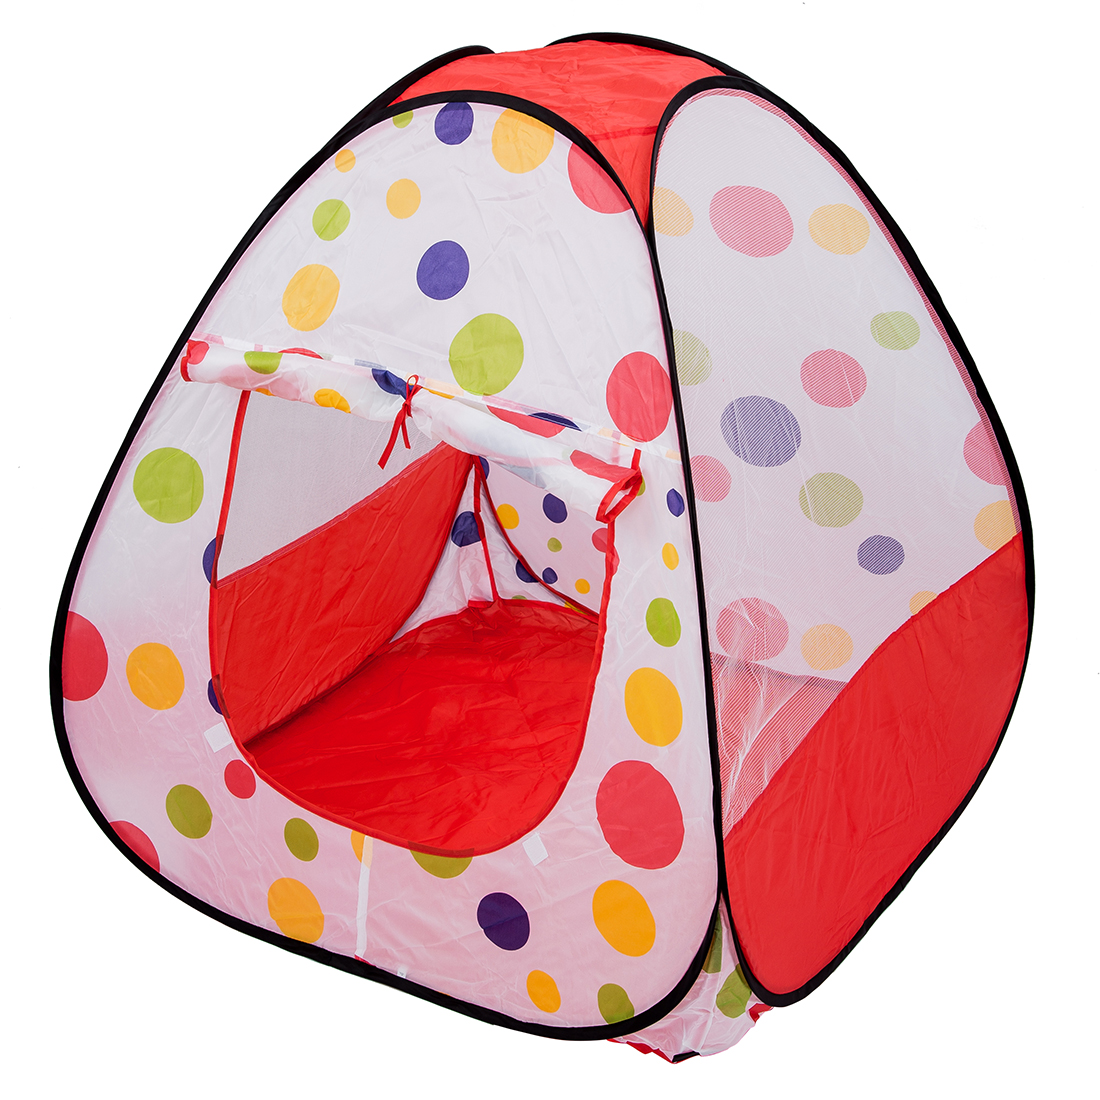 MACH Childern kids Playing Indoor&Outdoor Pop Up House Kids Play Game Kids Tent Toy toy multi-function tent child independent